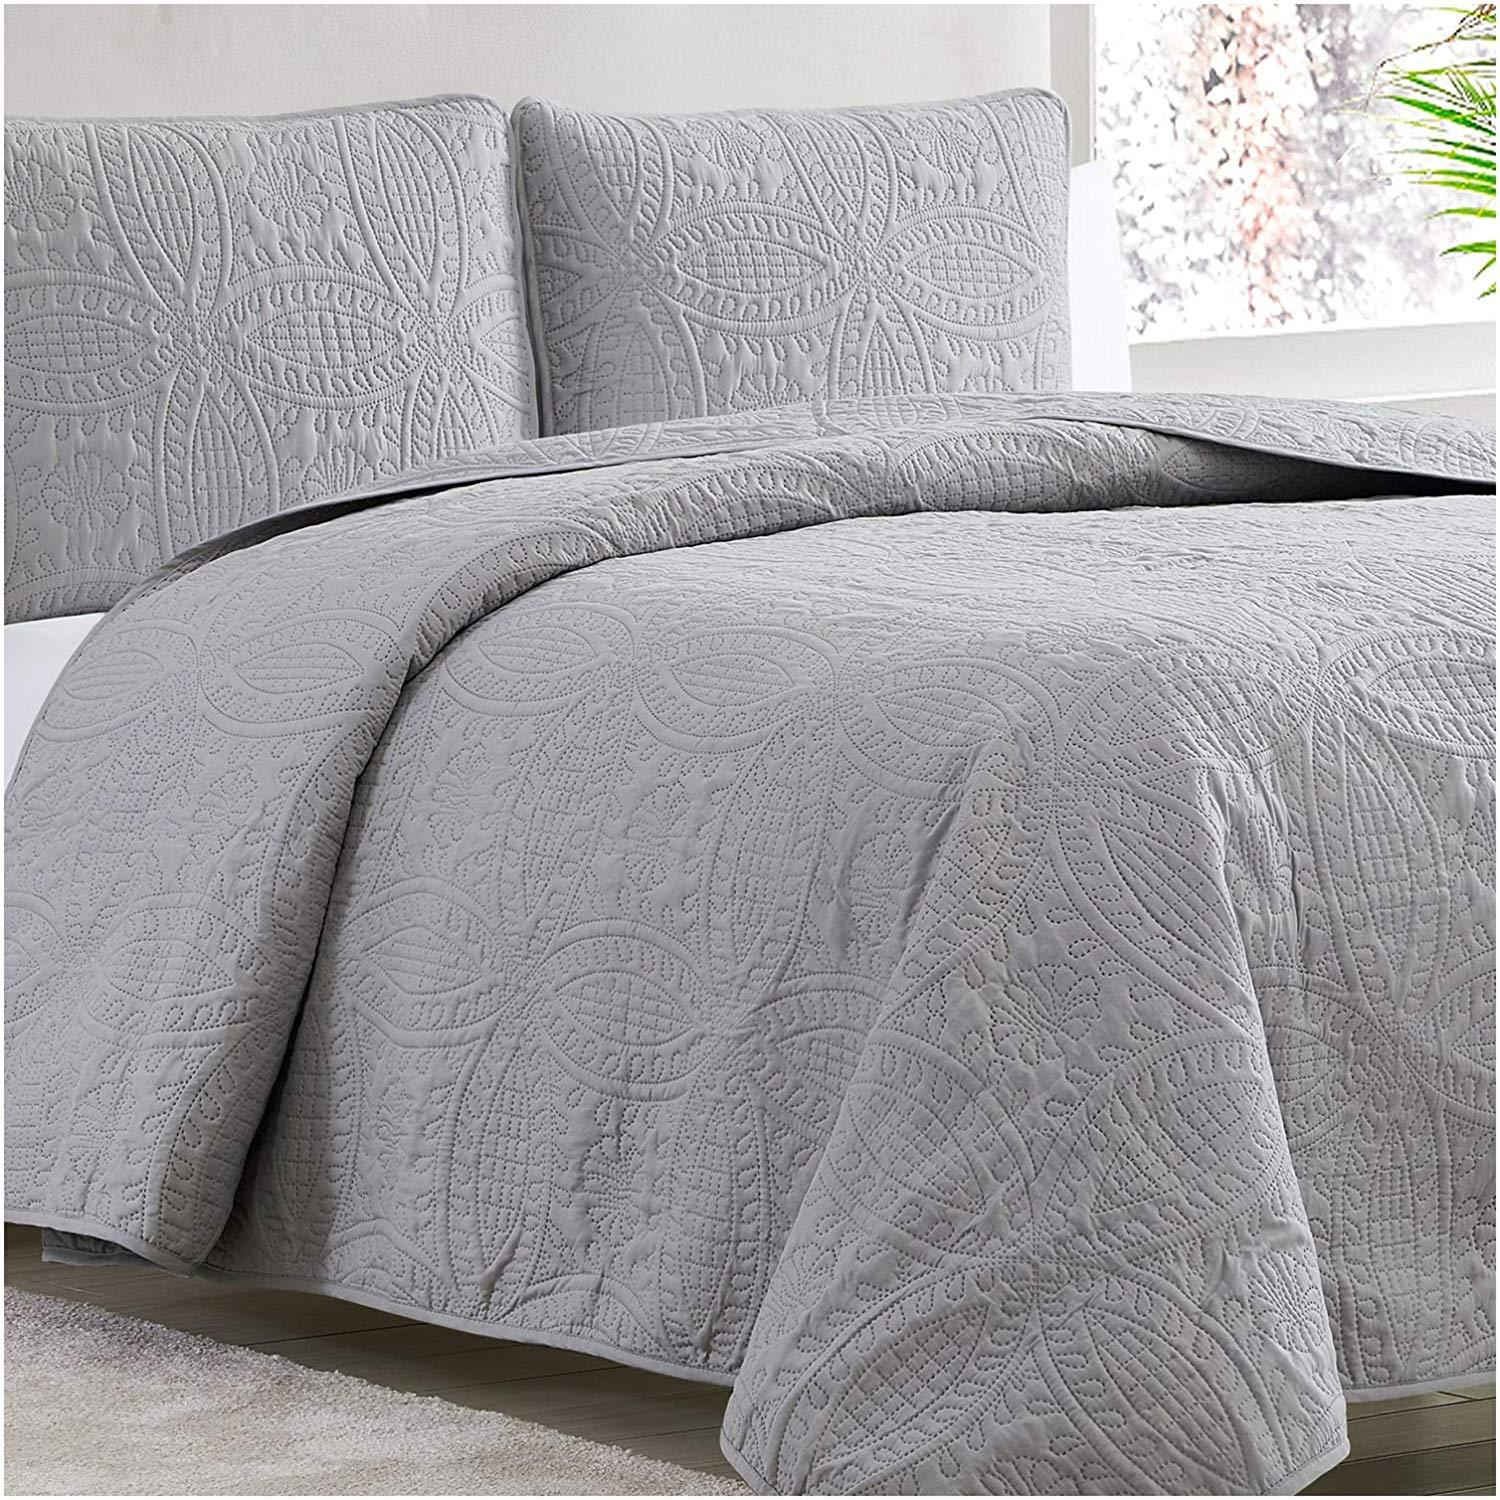 Navy Pinsonic Quilted Austin Oversize Bedspread Coverlet 3-piece Set